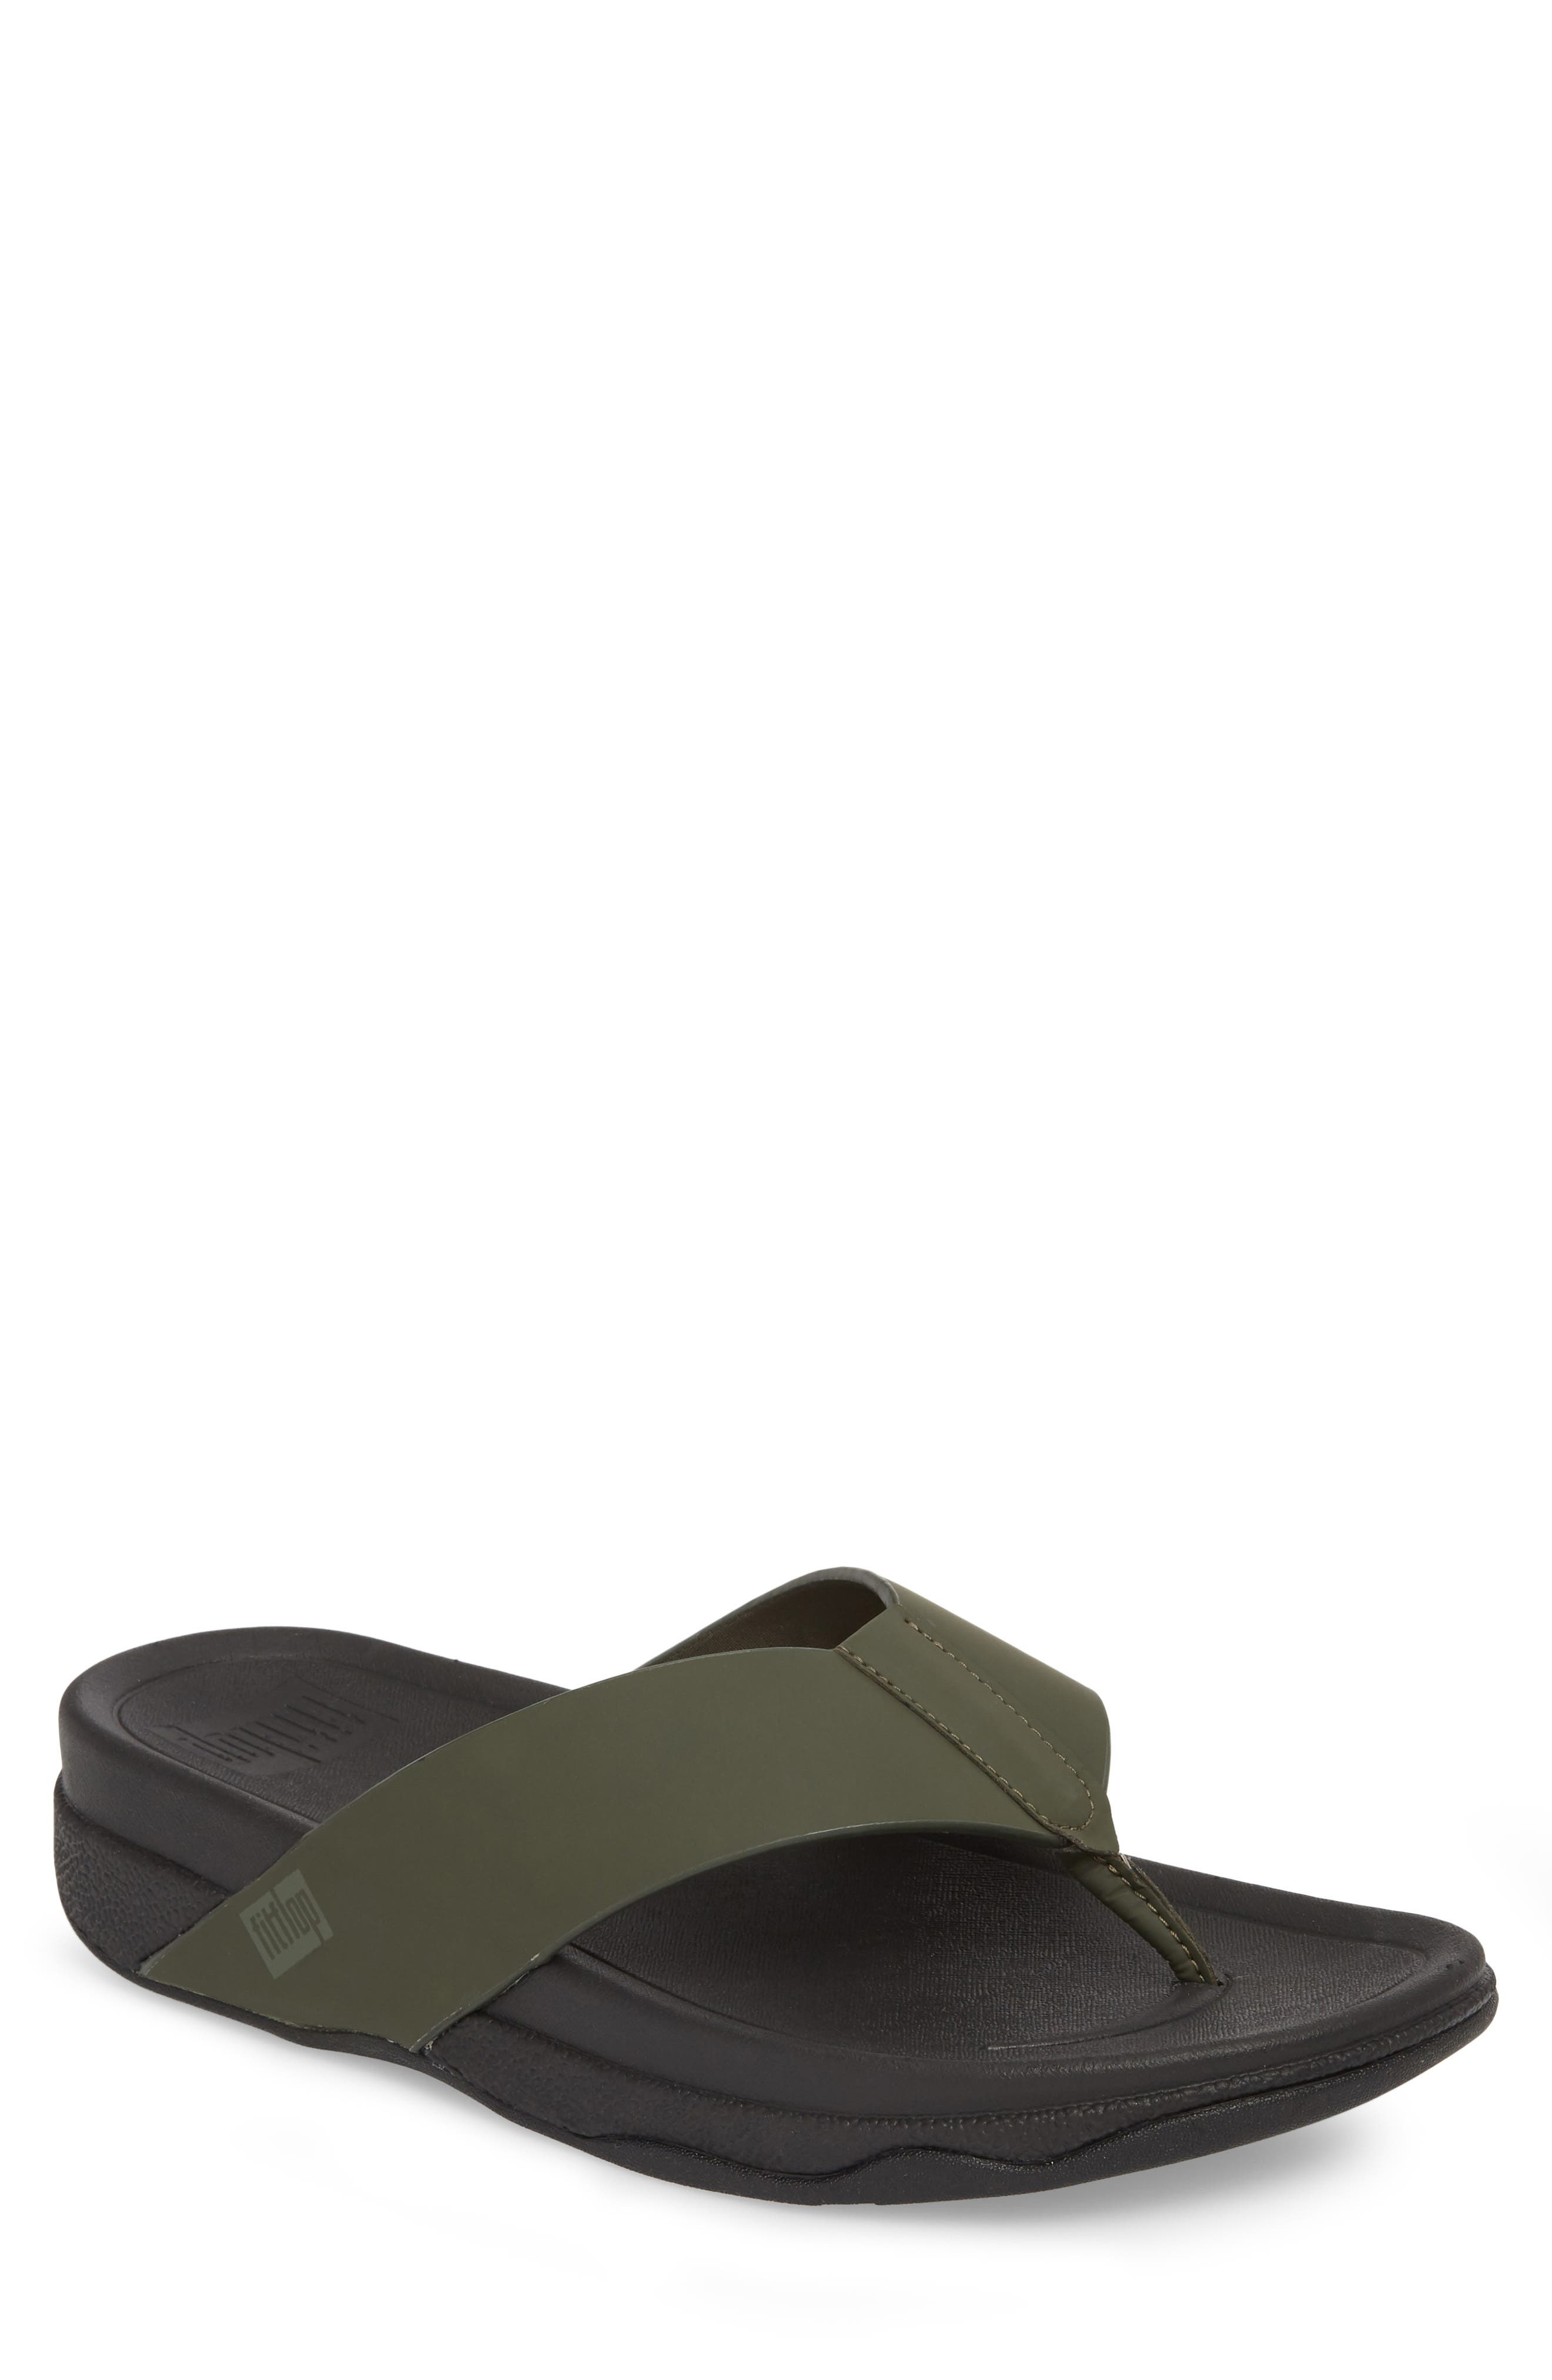 FitFlop Surfer Toe Flip Flop (Men)